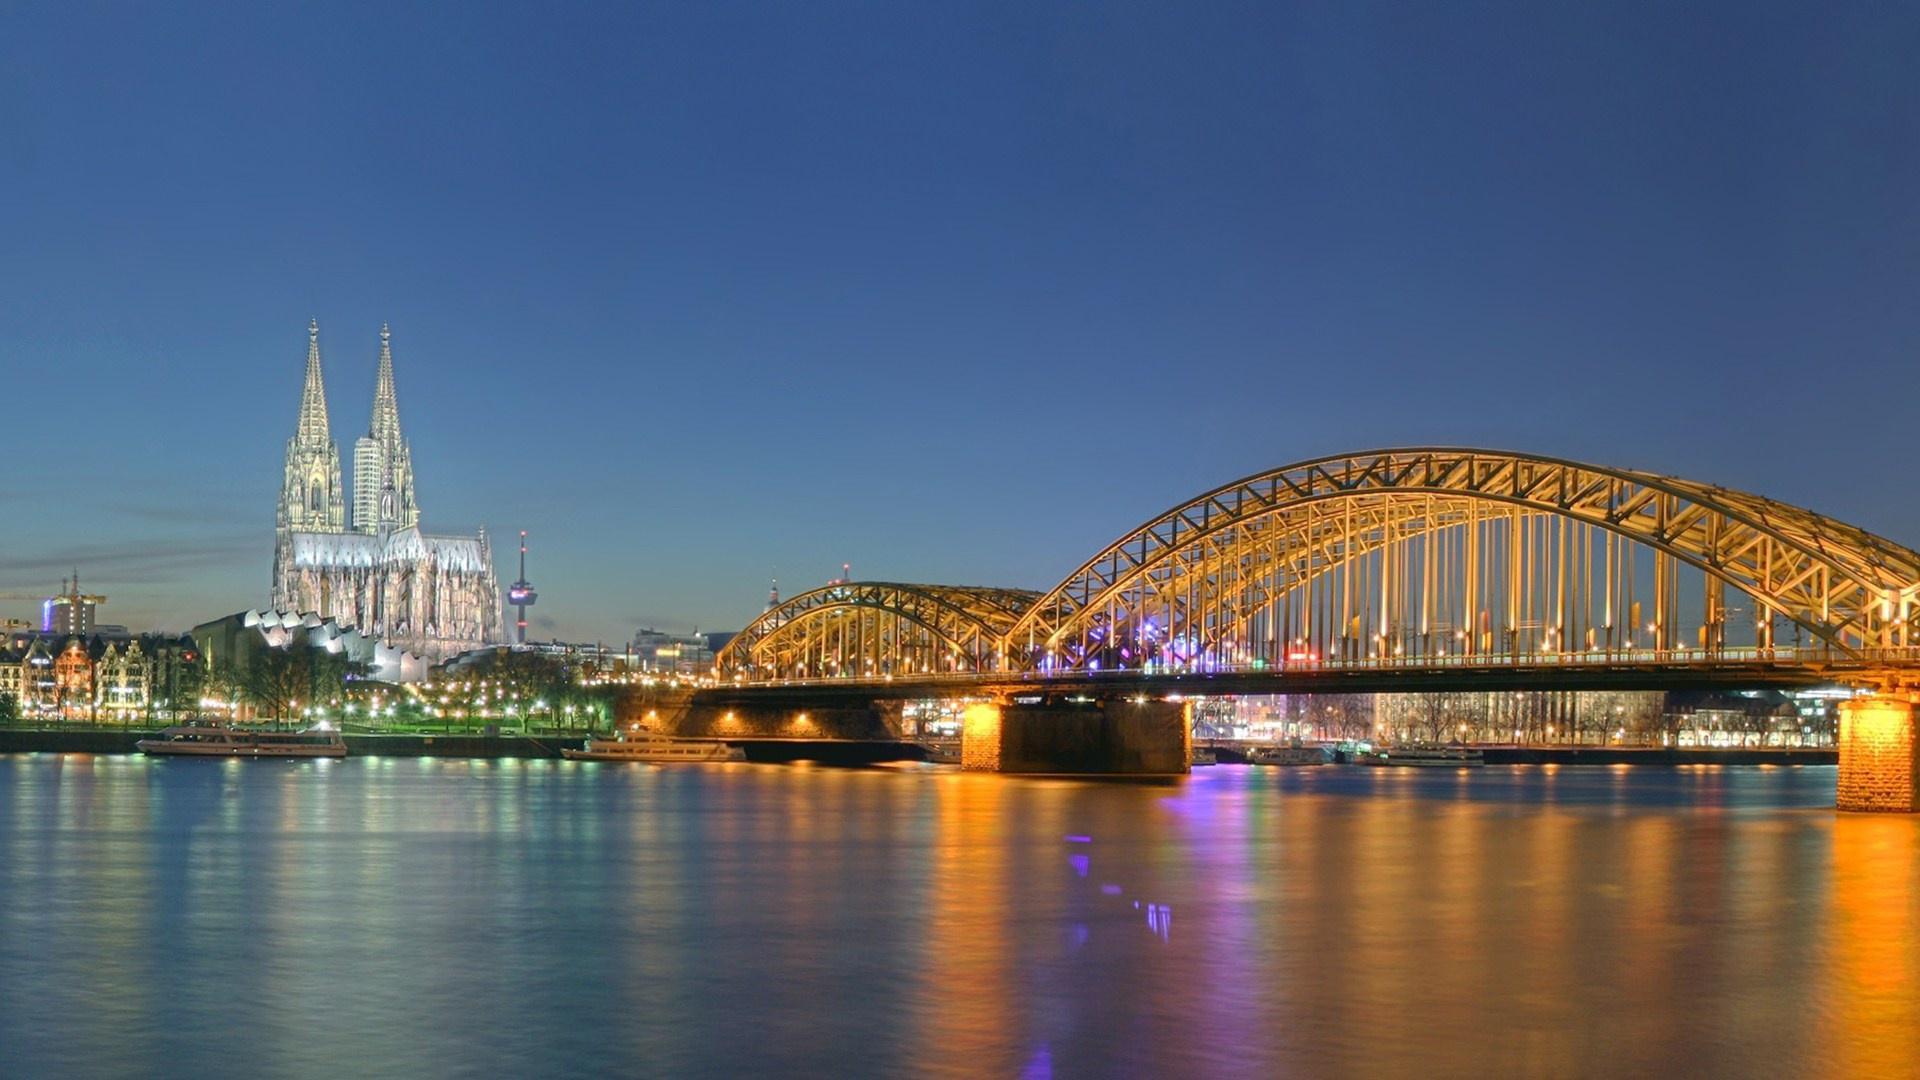 3d Moving Wallpapers City Lights Hd Cologne Germany City Night Lights Bridge Cathedral